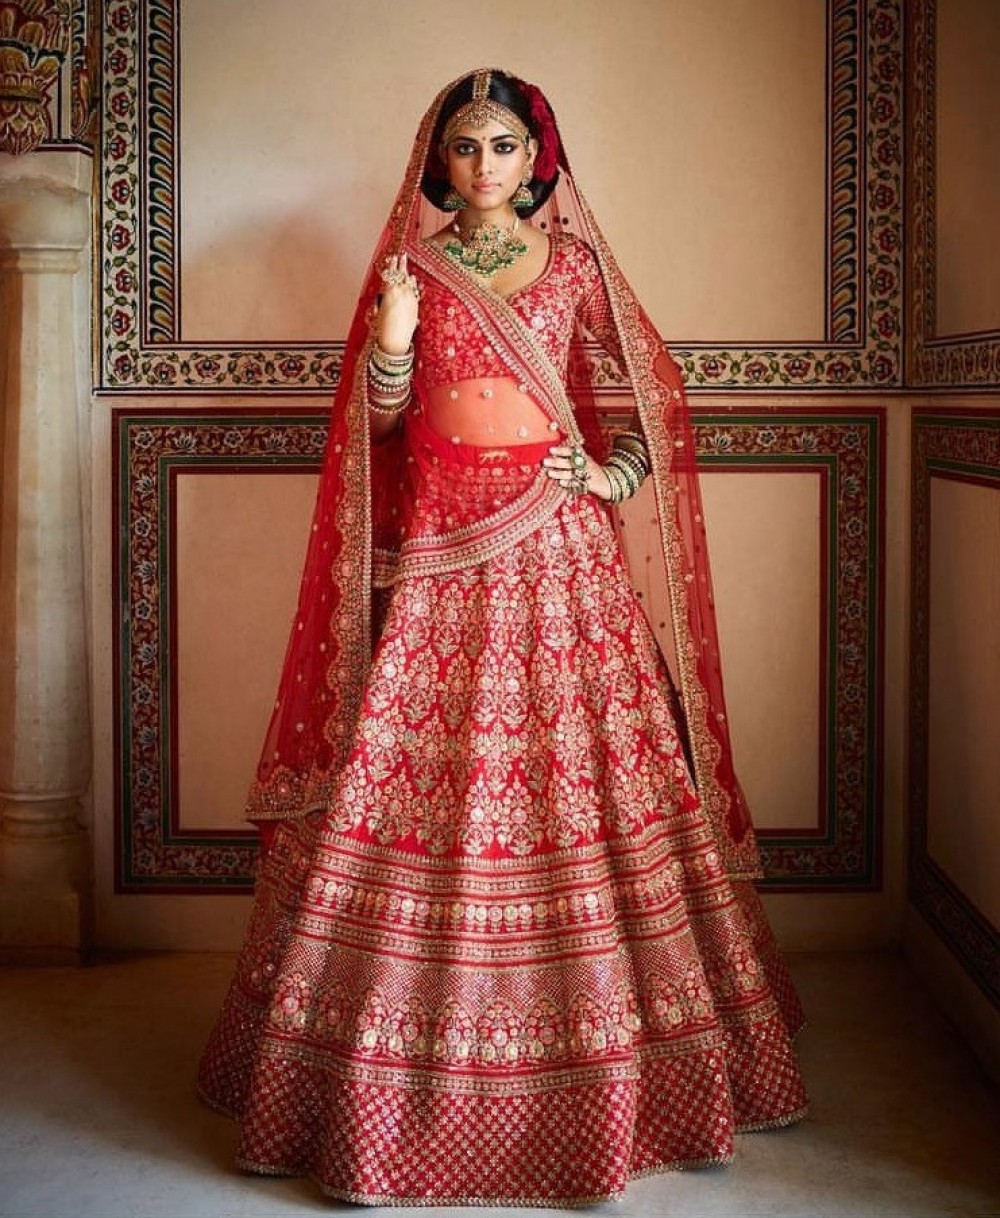 Glossy Celebrity Selection Red Colour Casual Wear Embroidery Lehenga Choli For Bride girl special